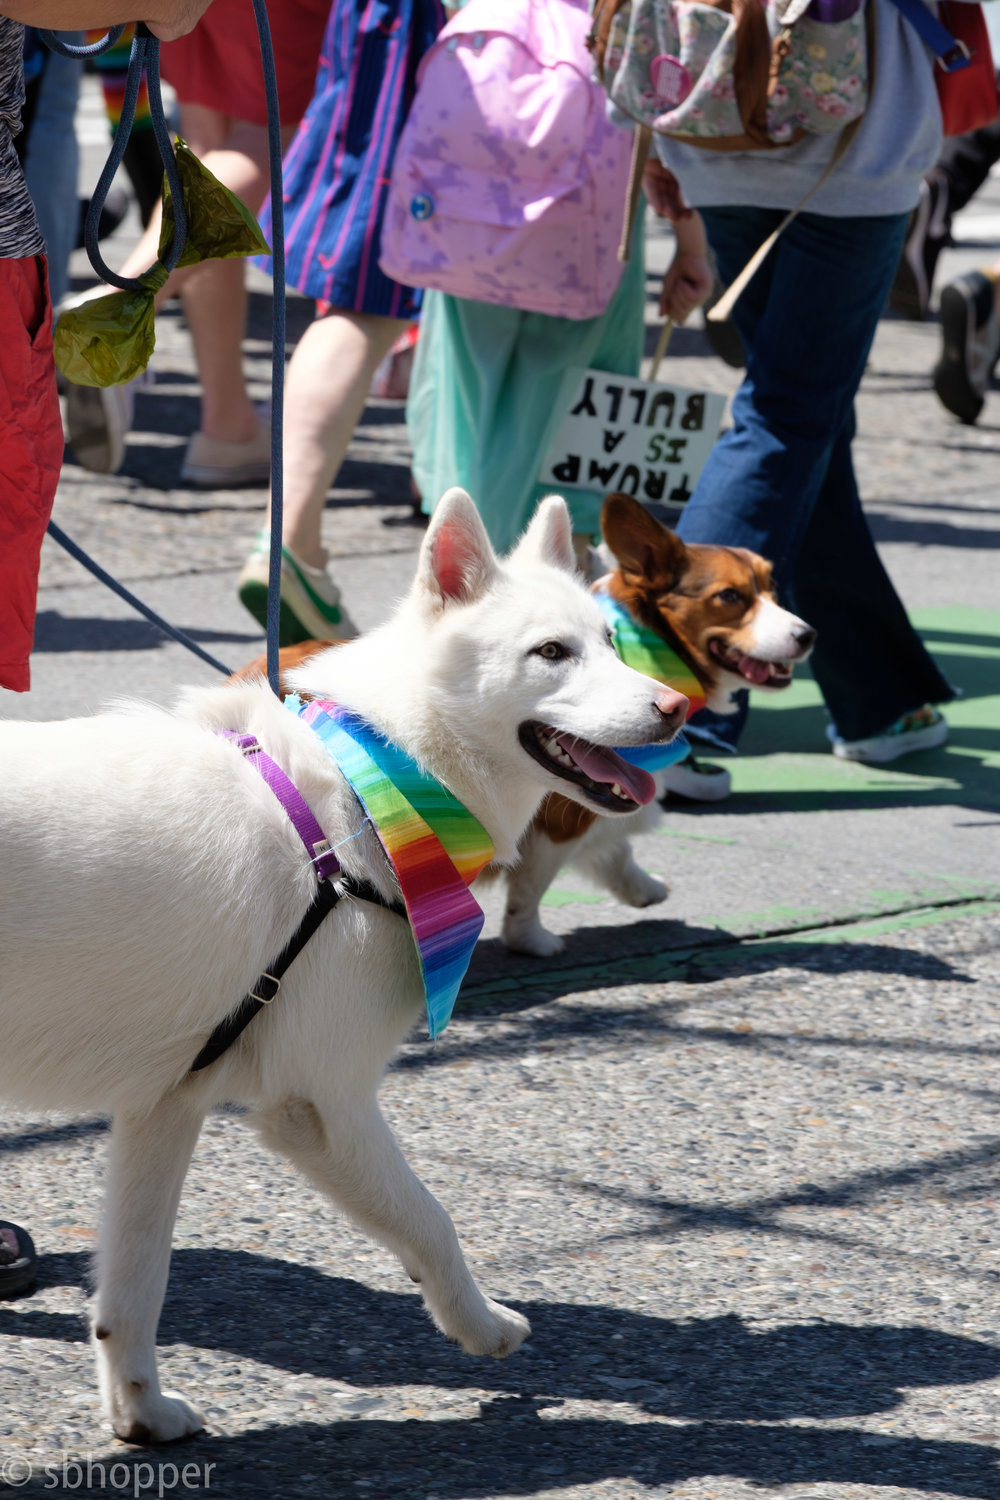 pride-2017-seattle-29-of-52.jpg